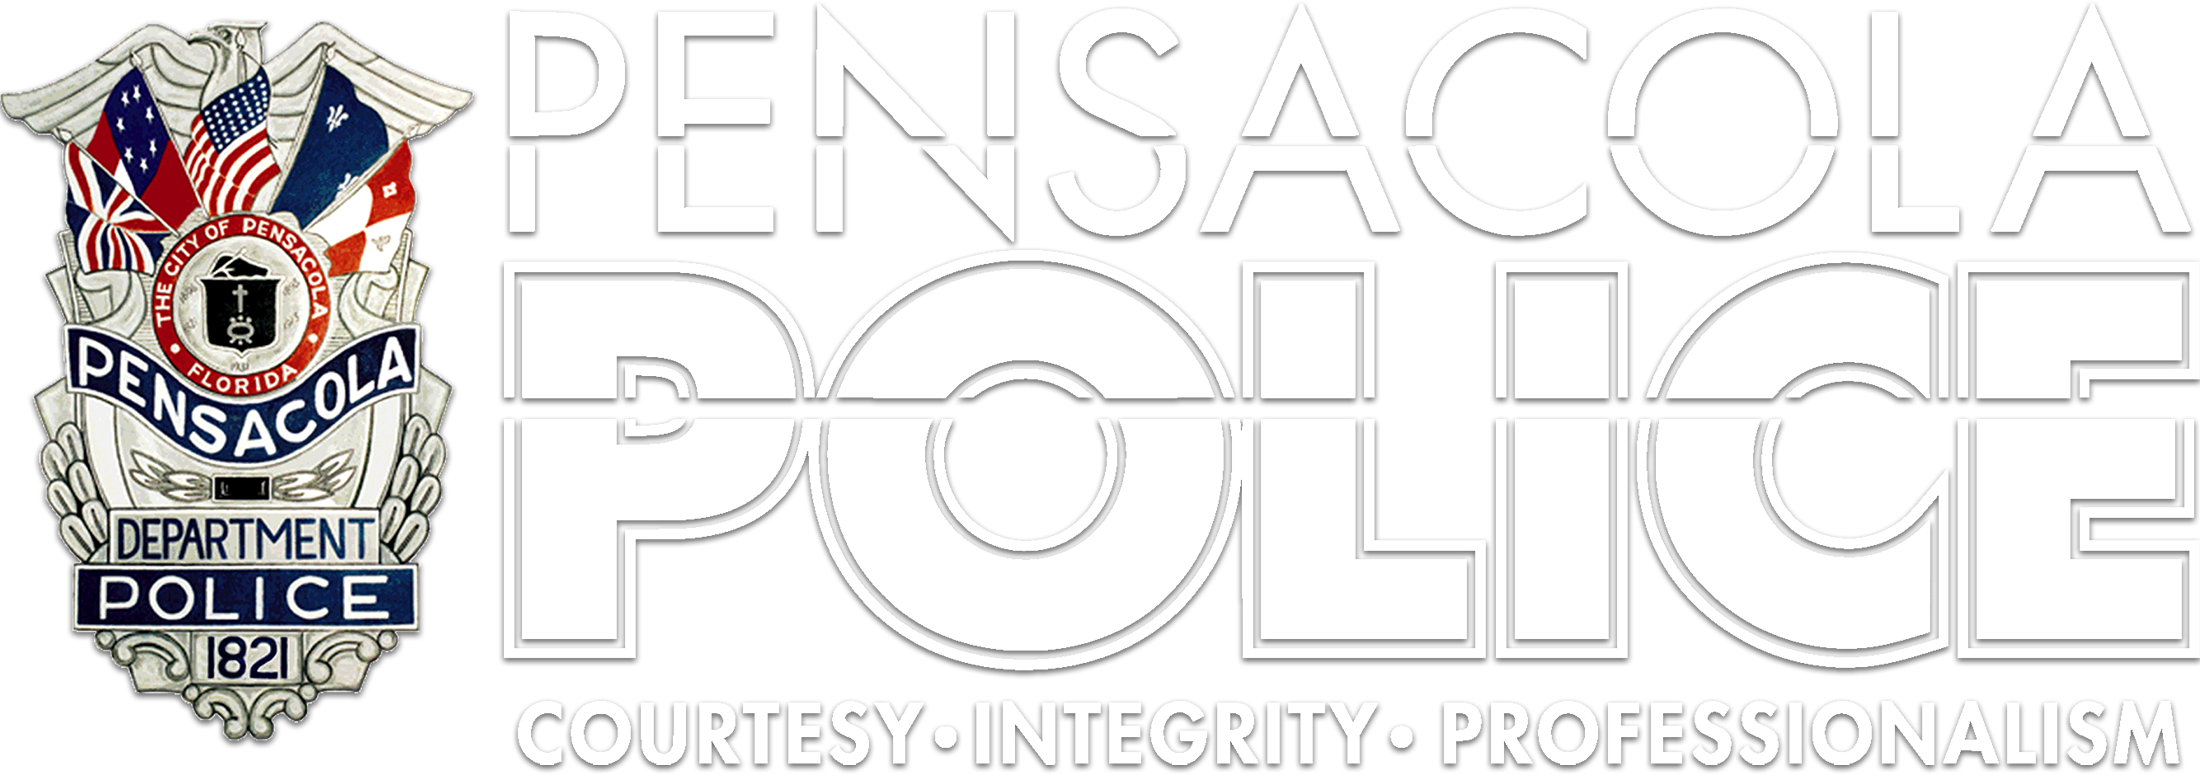 Crime Reports | City of Pensacola, Florida Official Website